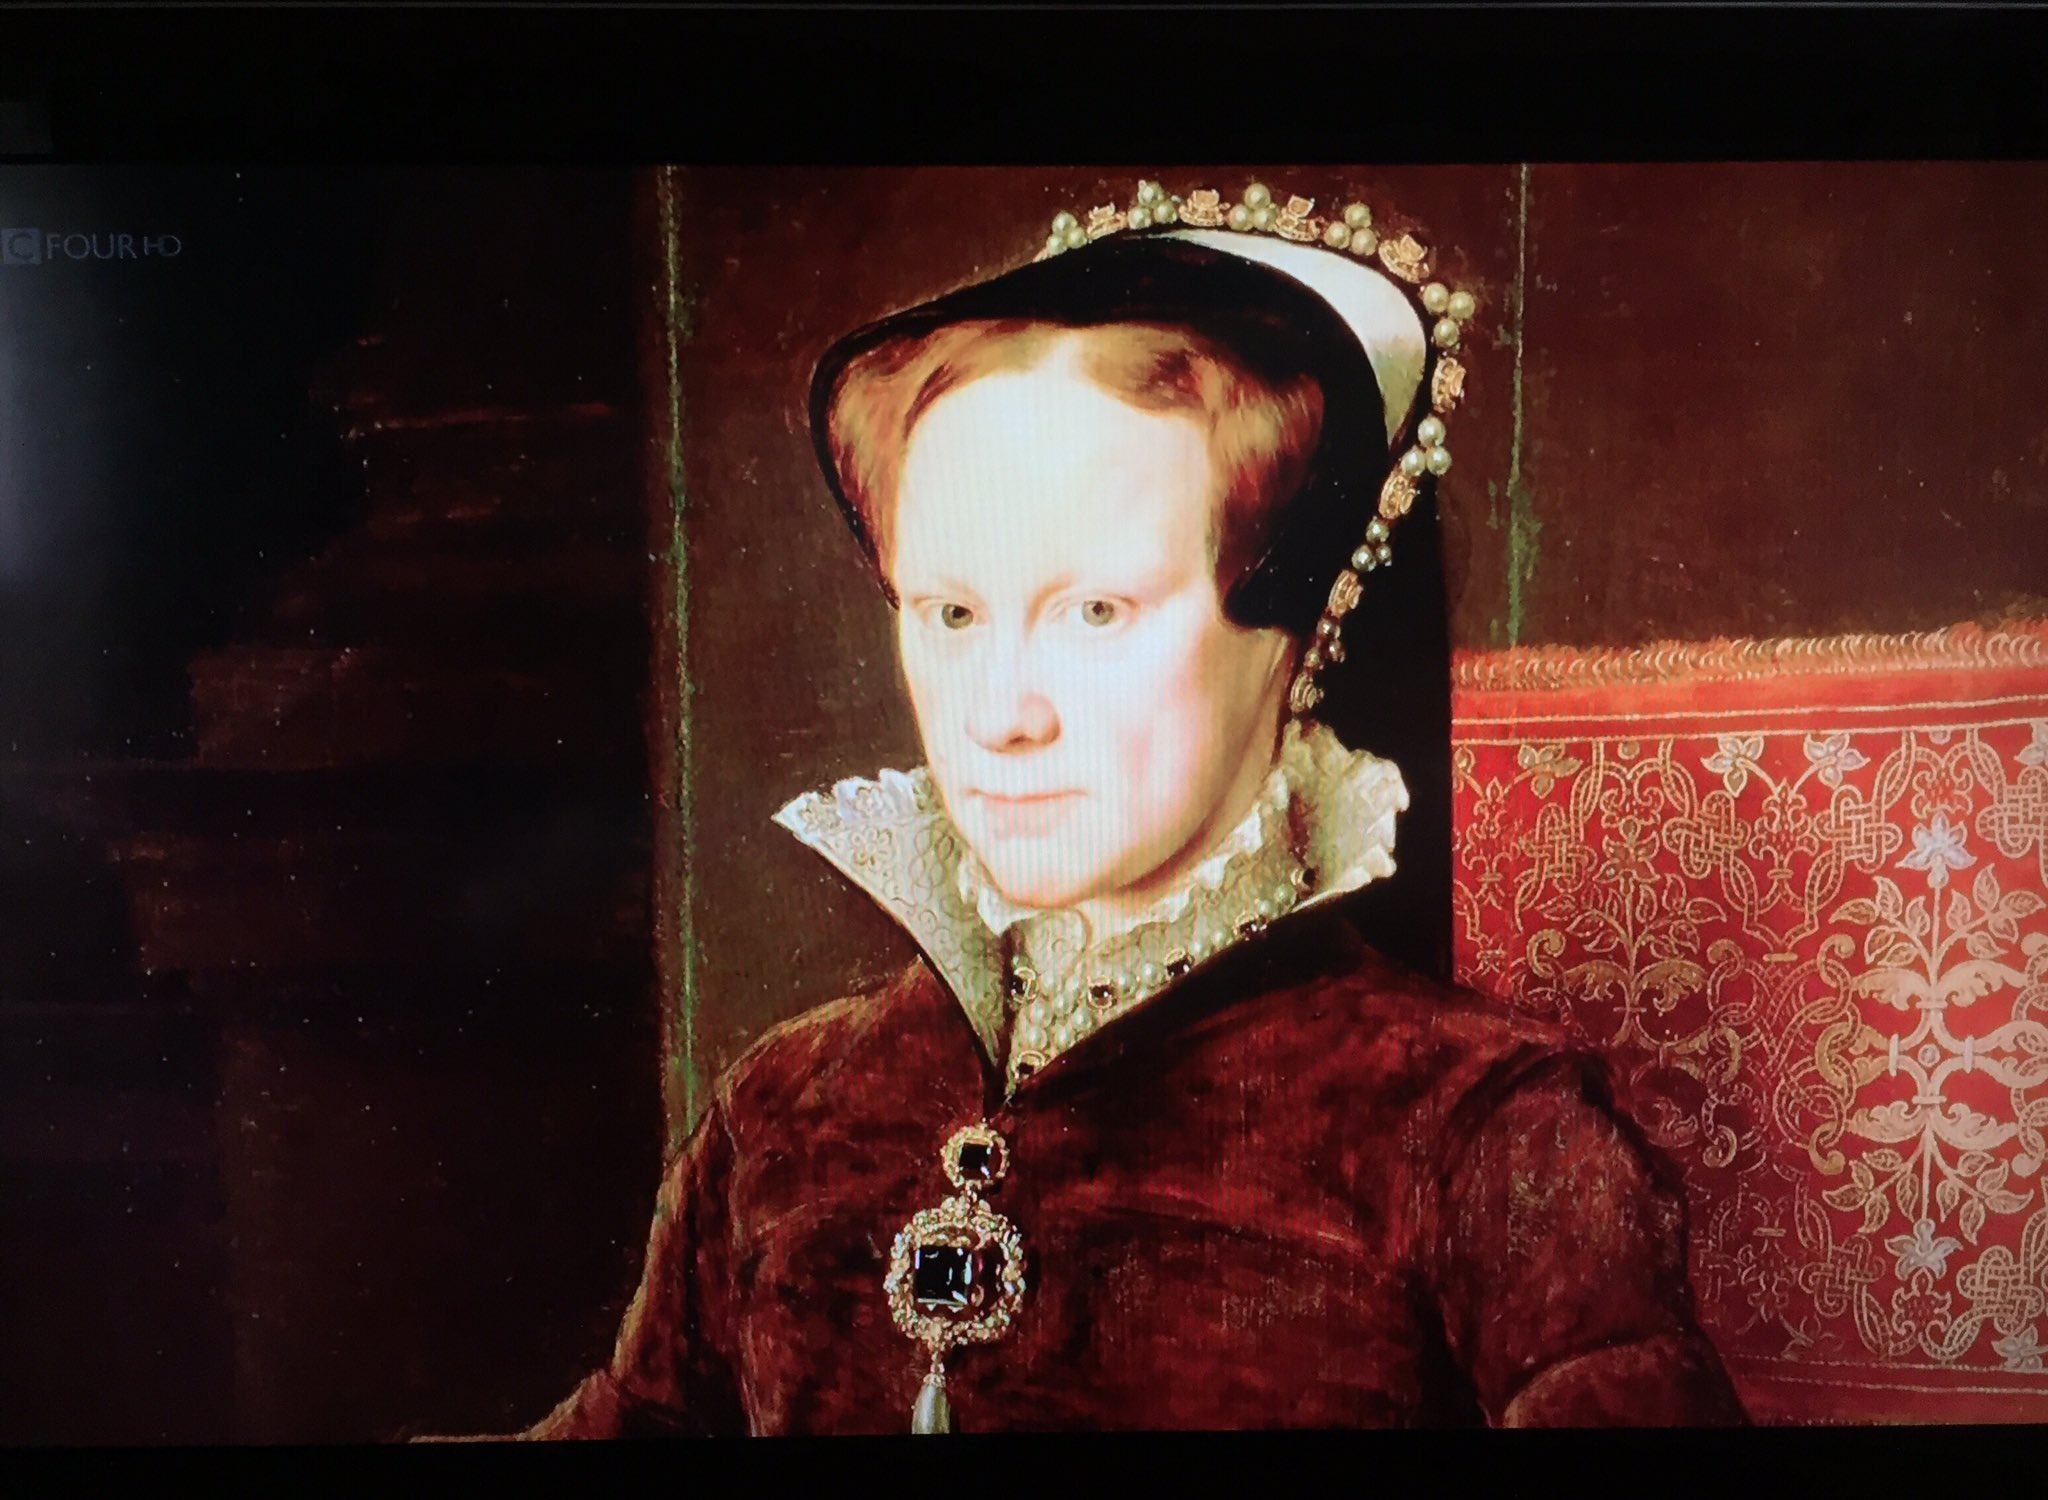 RT @Cain_Unable: Remember when Dennis Waterman ruled England from 1553-1558? https://t.co/gihJjgUdfH